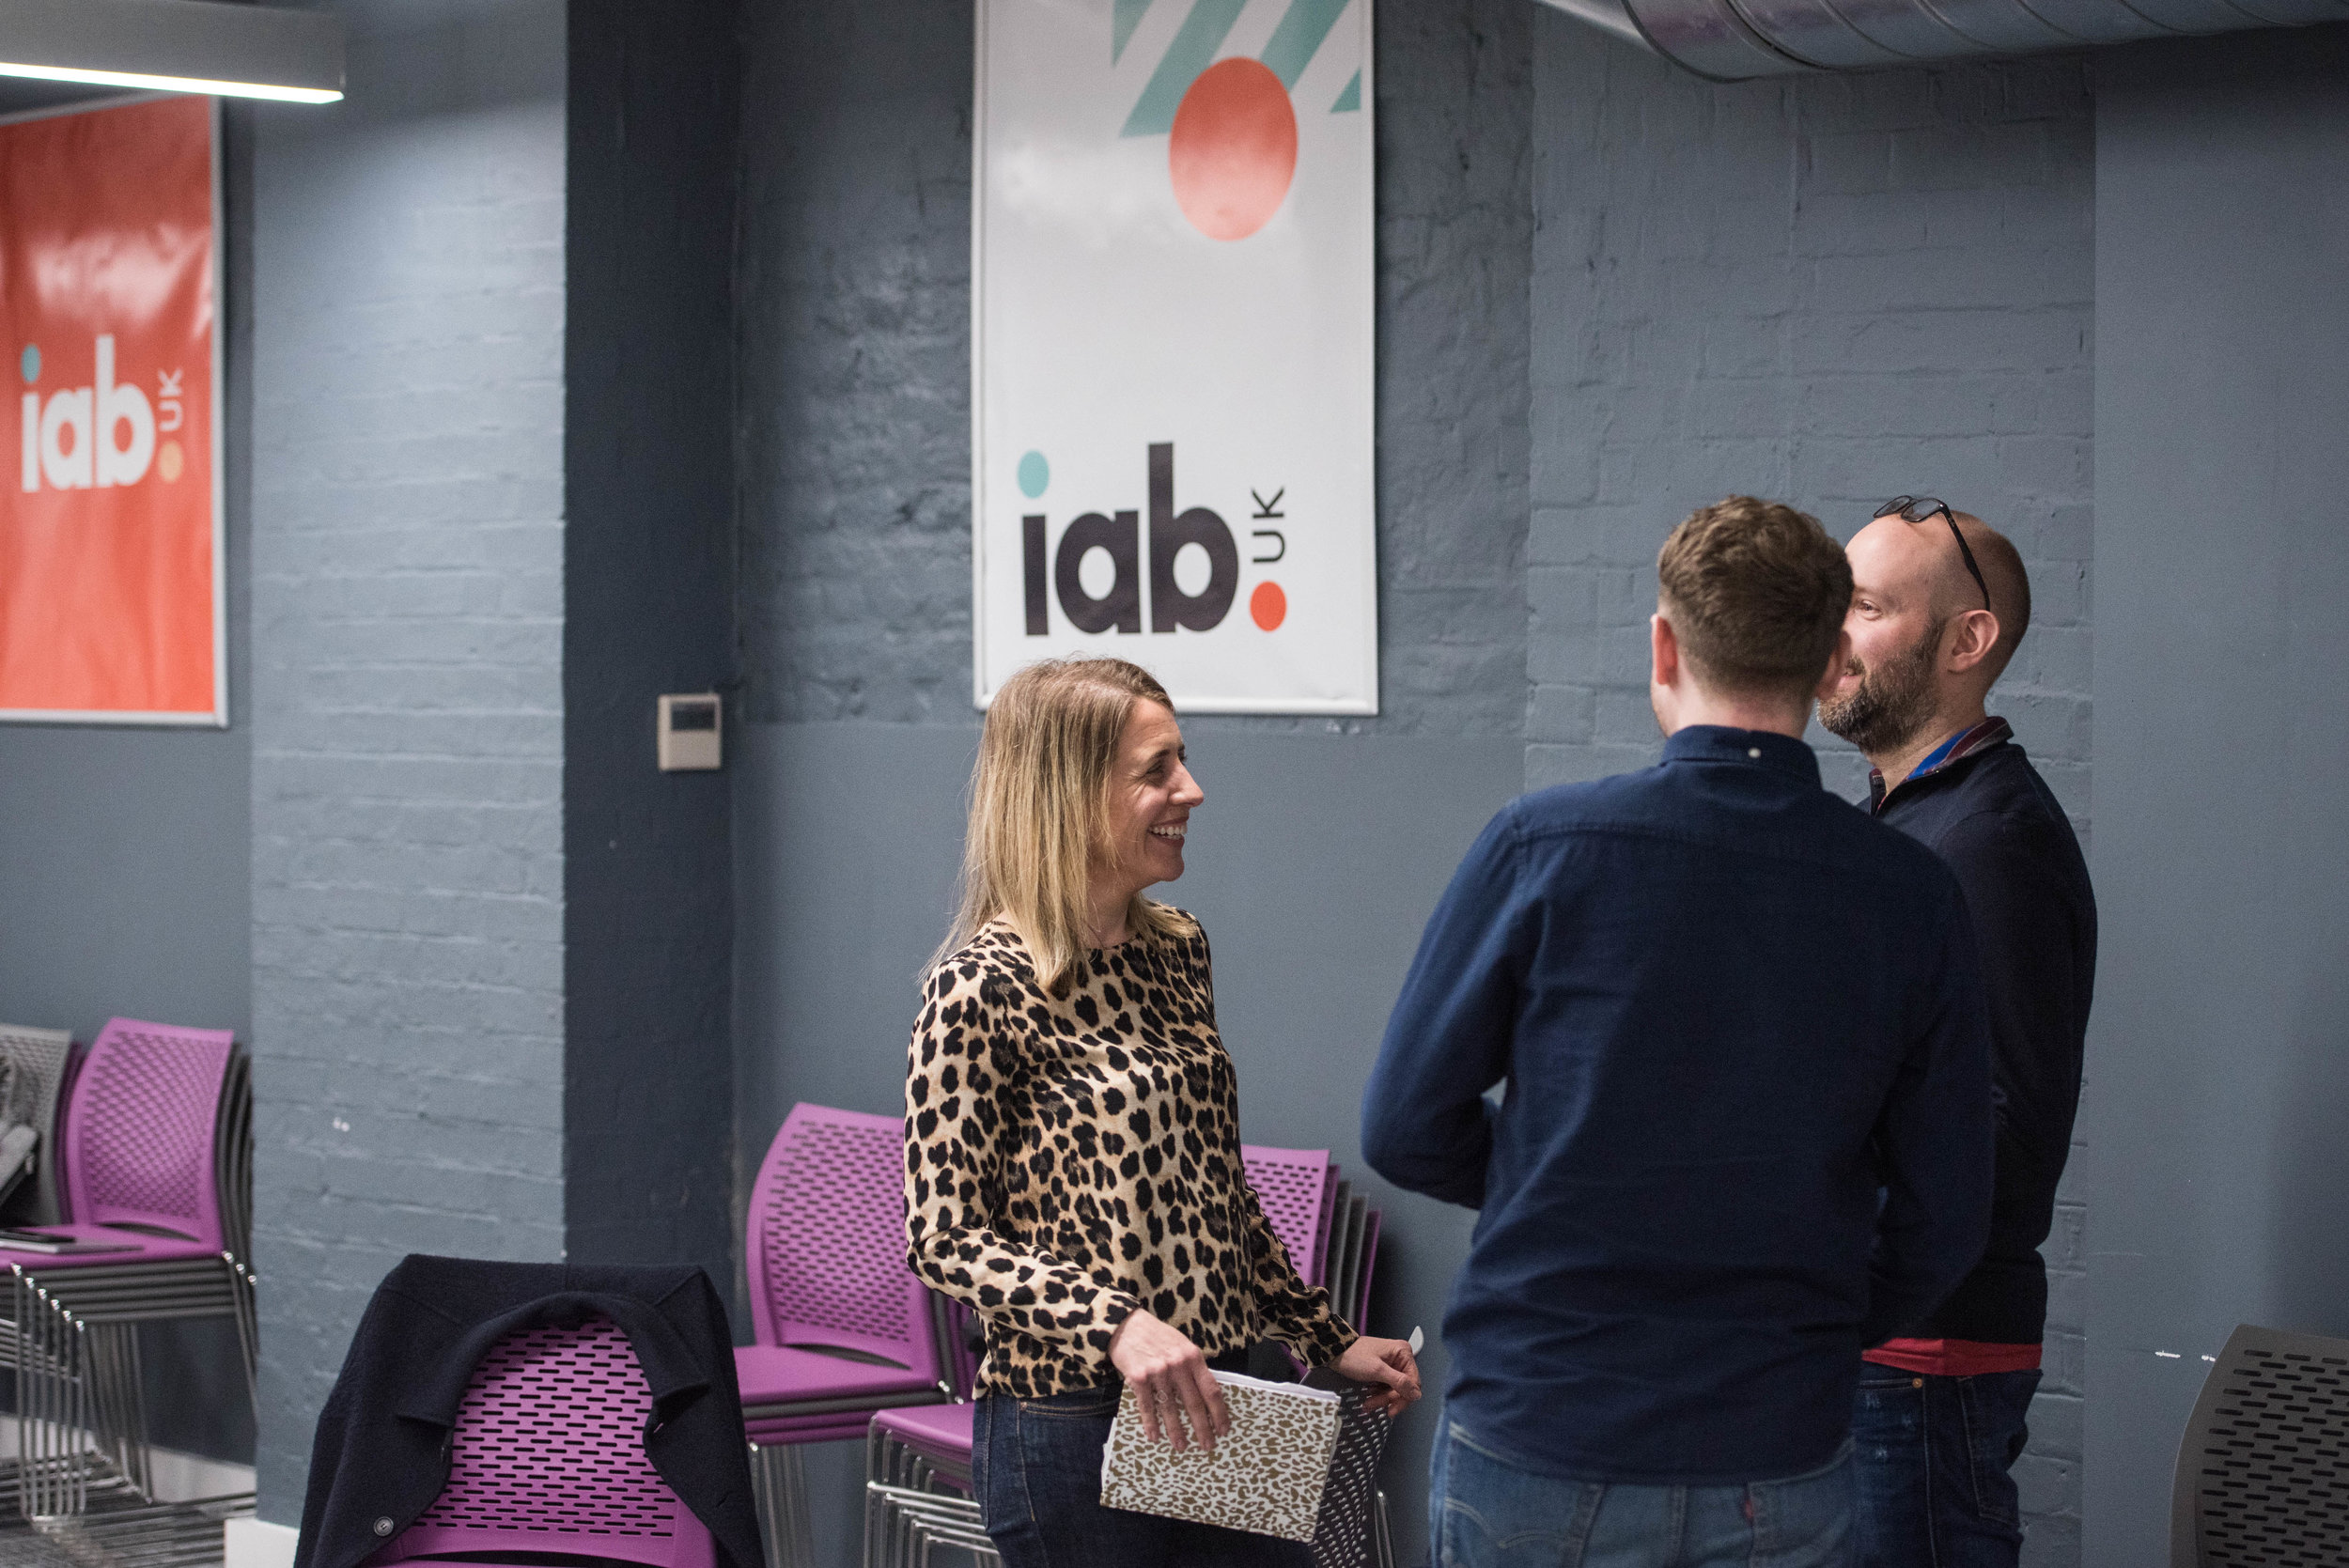 IAB Uk_Incidental Shots_SM (255 of 312).jpg